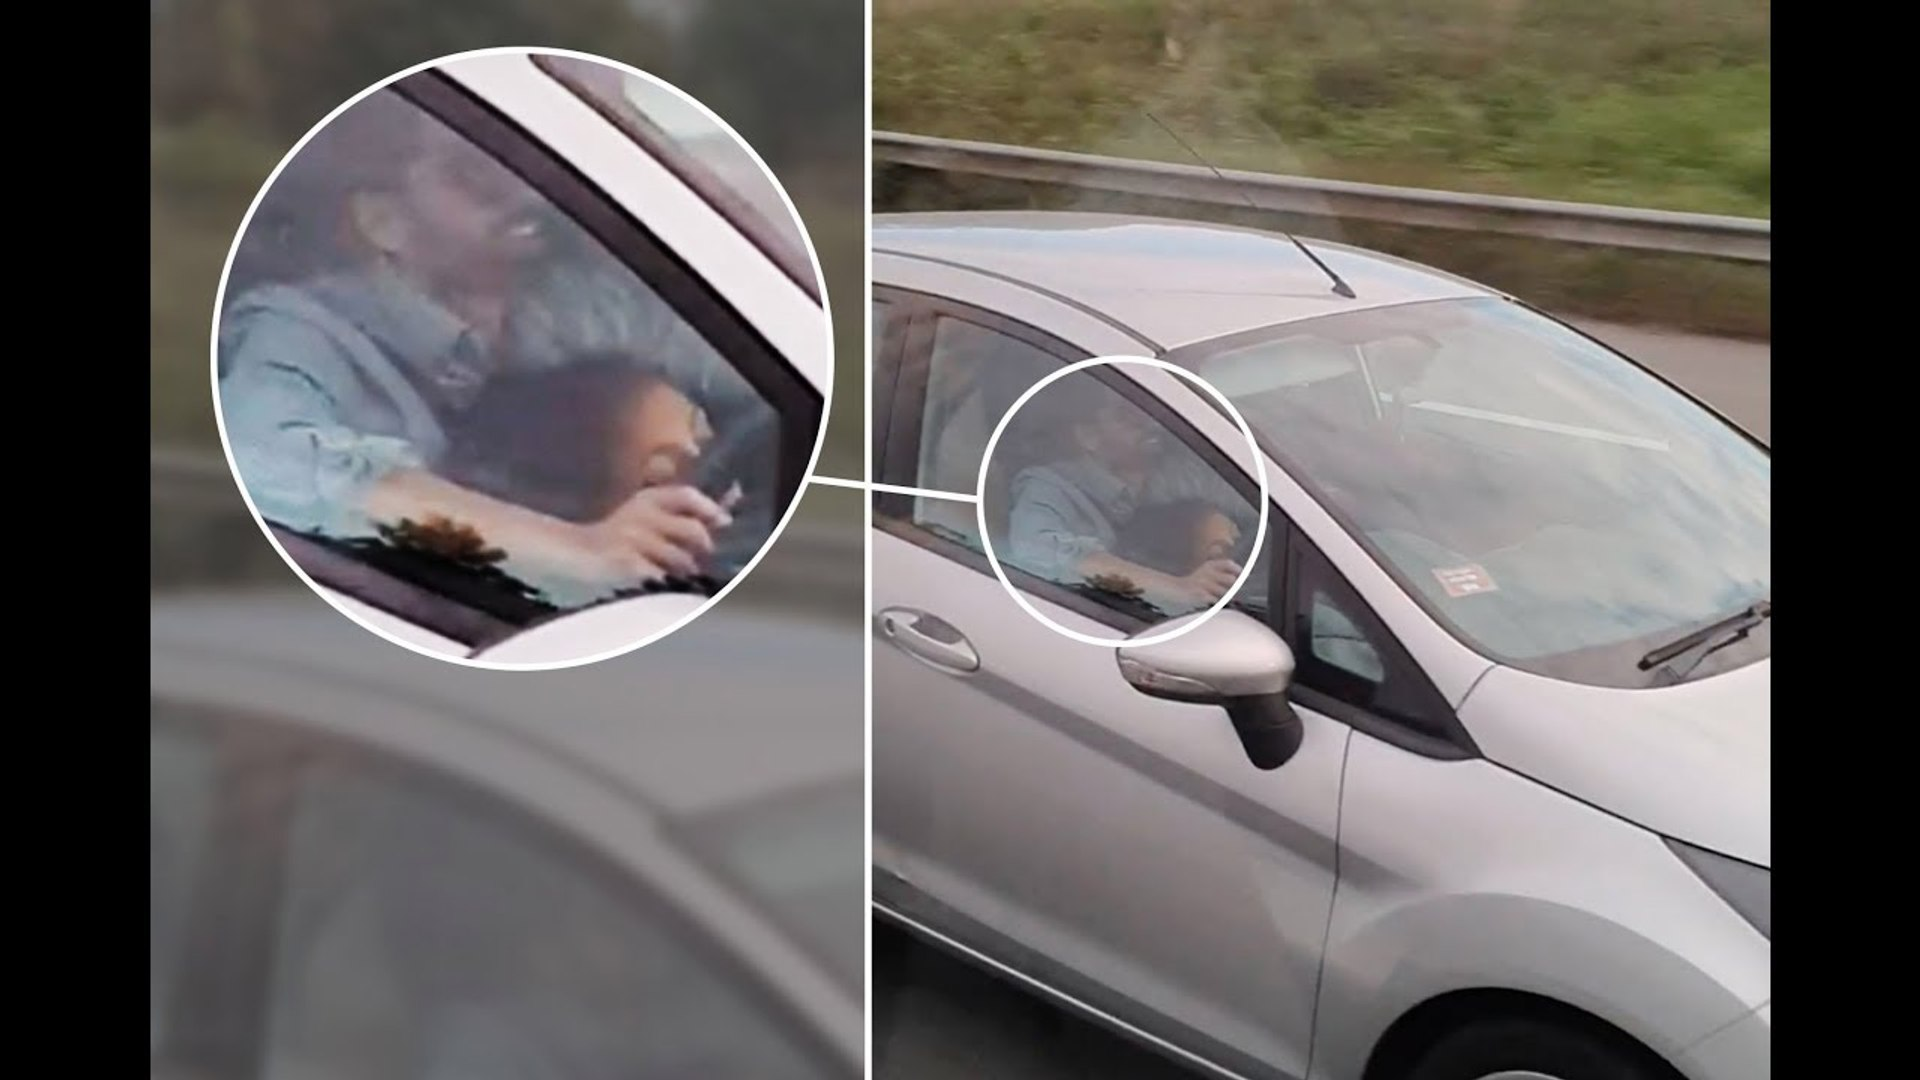 Tour bus catches couple having sexv in car (Video) Any Articles News